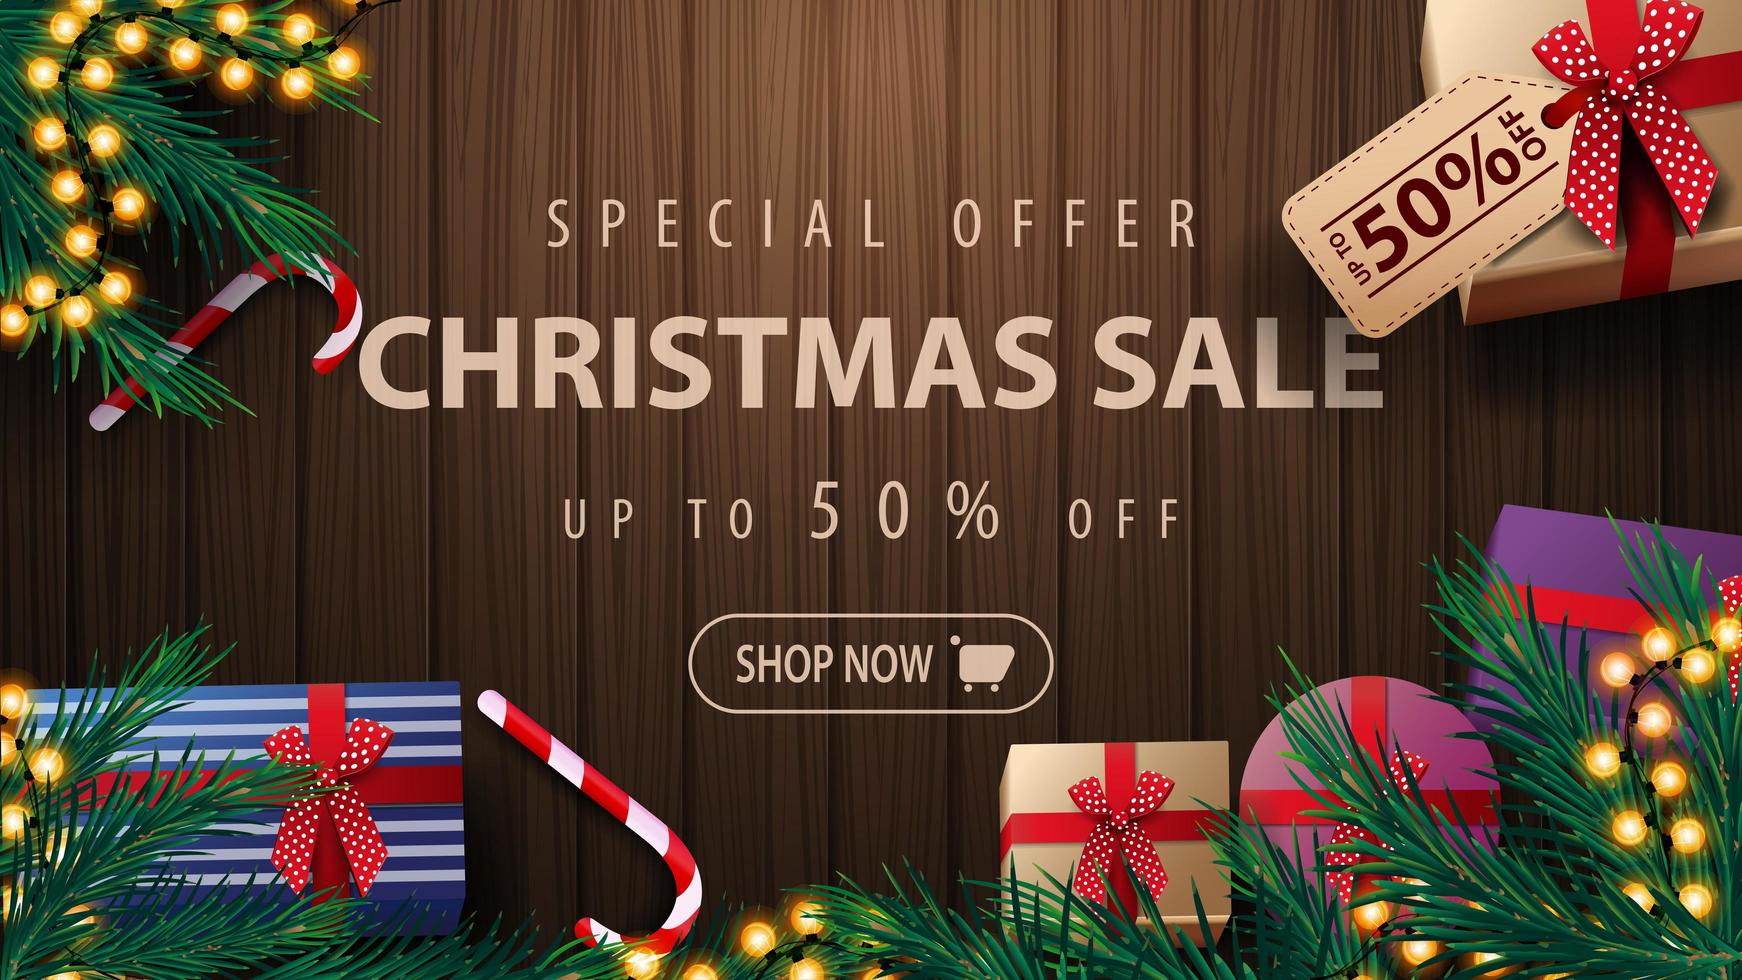 Discount banner with wooden background and garland vector